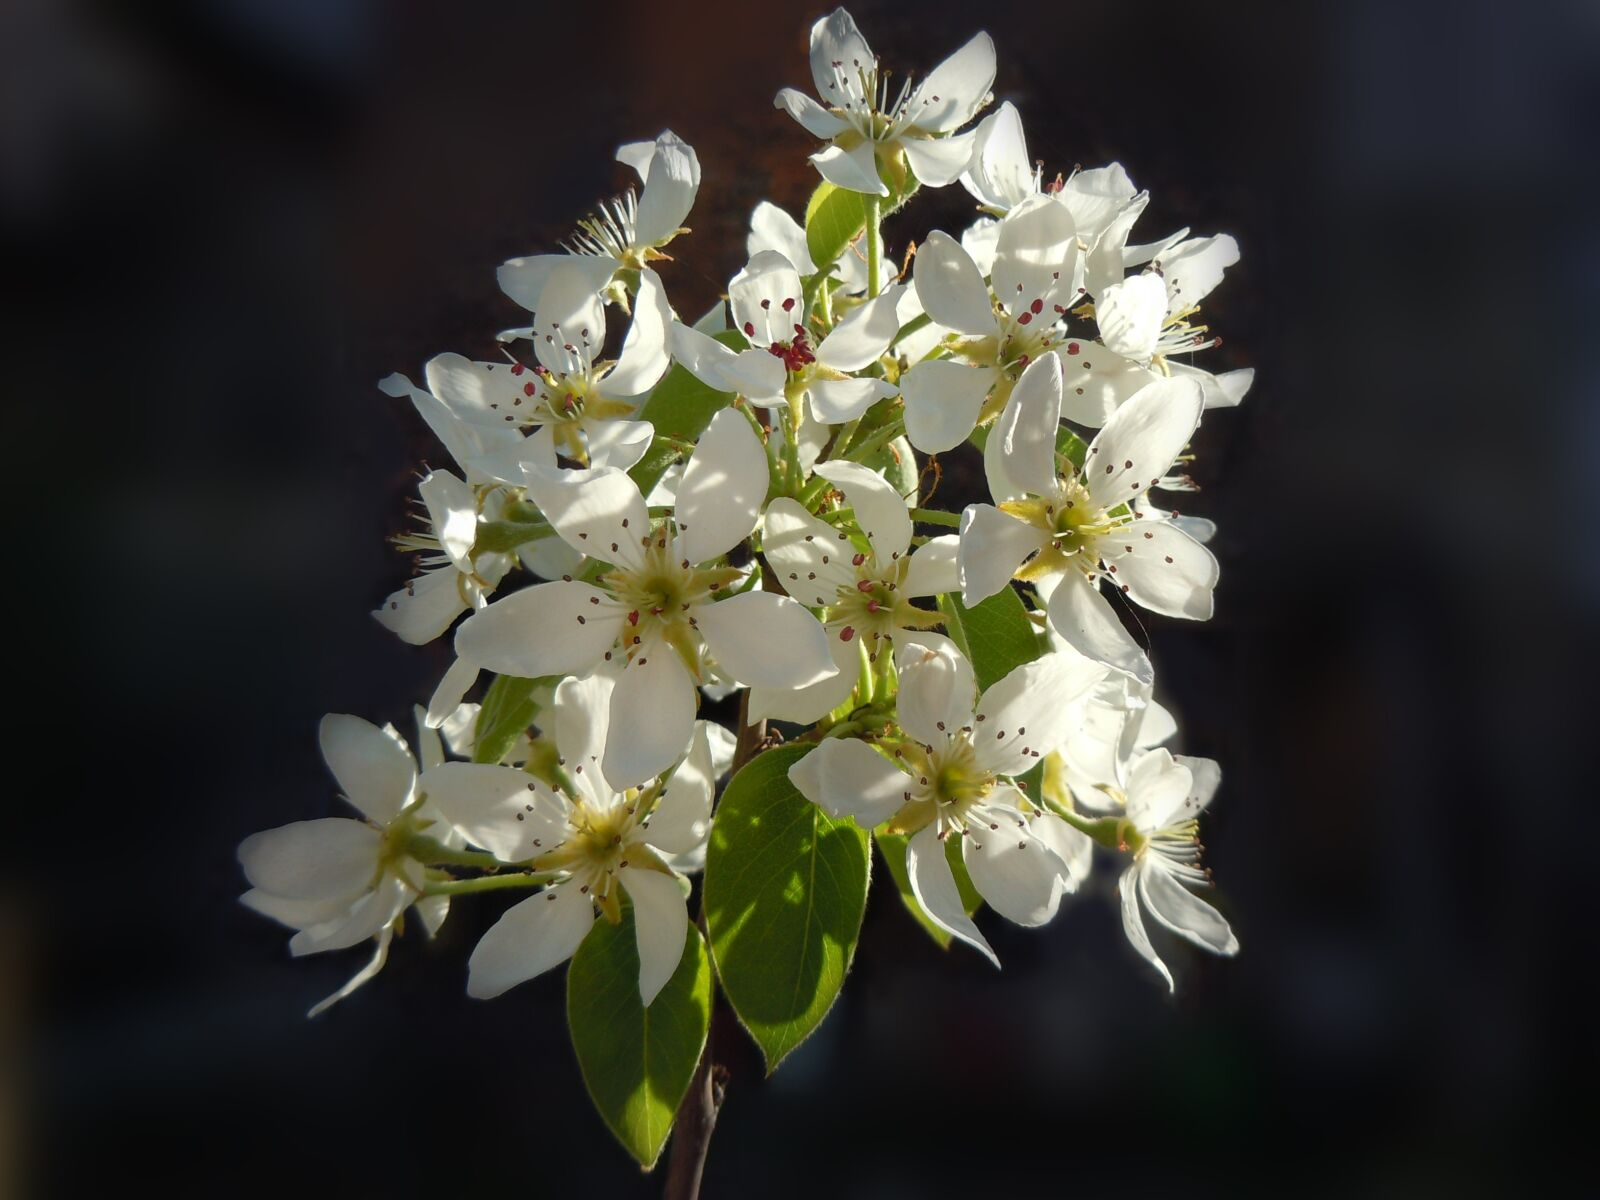 flowers of pear, however